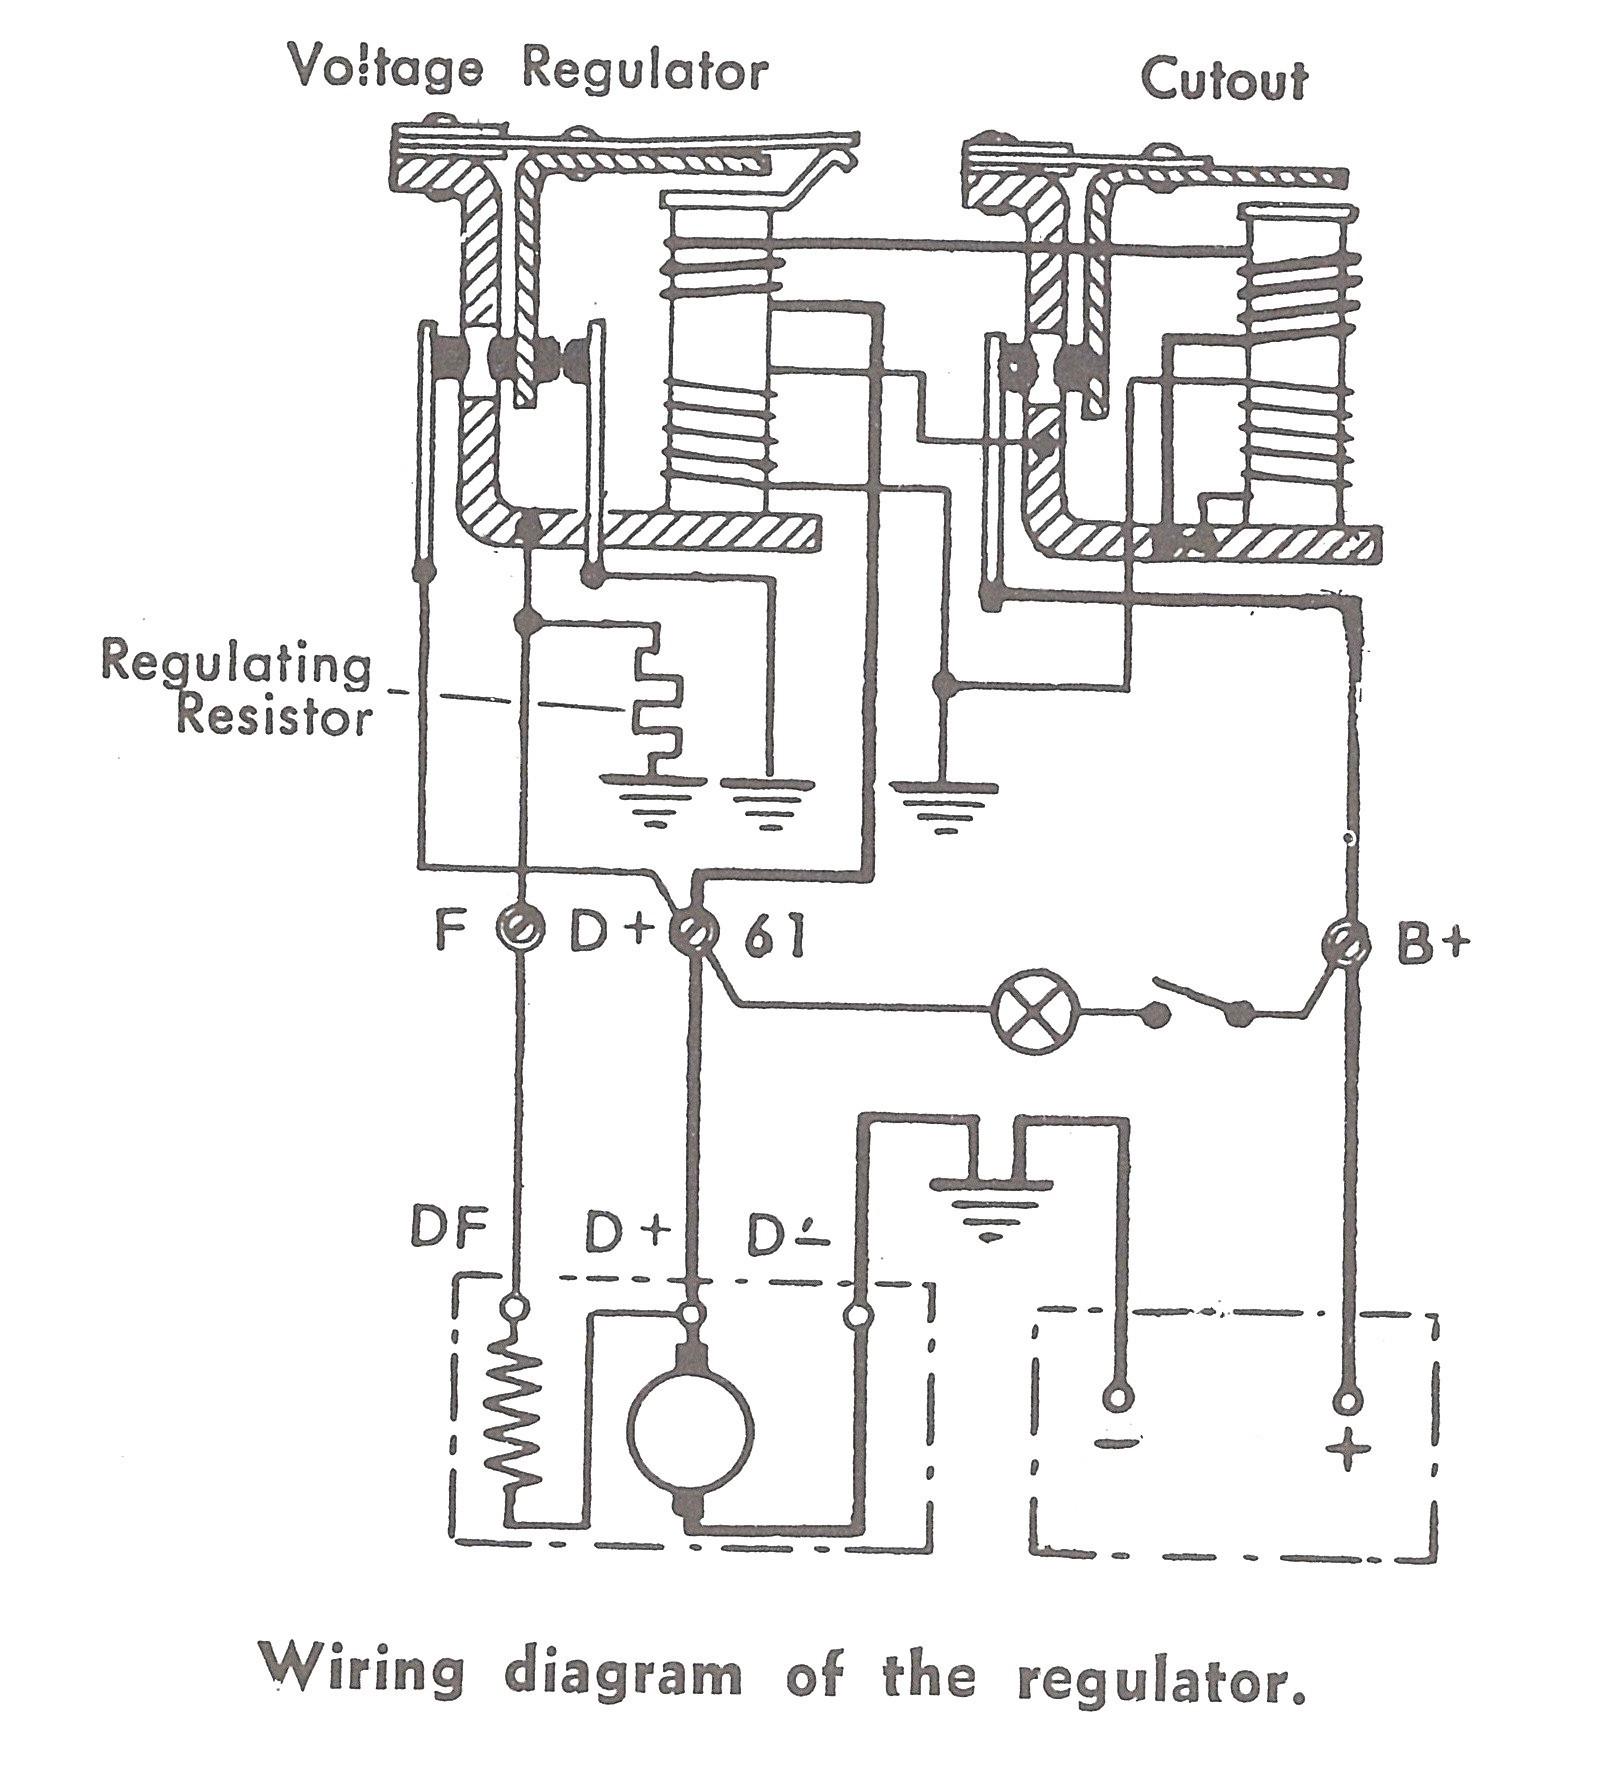 1955 International Pickup Wiring Diagram Library Integrated Circuitjpg Farmall Super C 6 Volt Diagrams Schematics